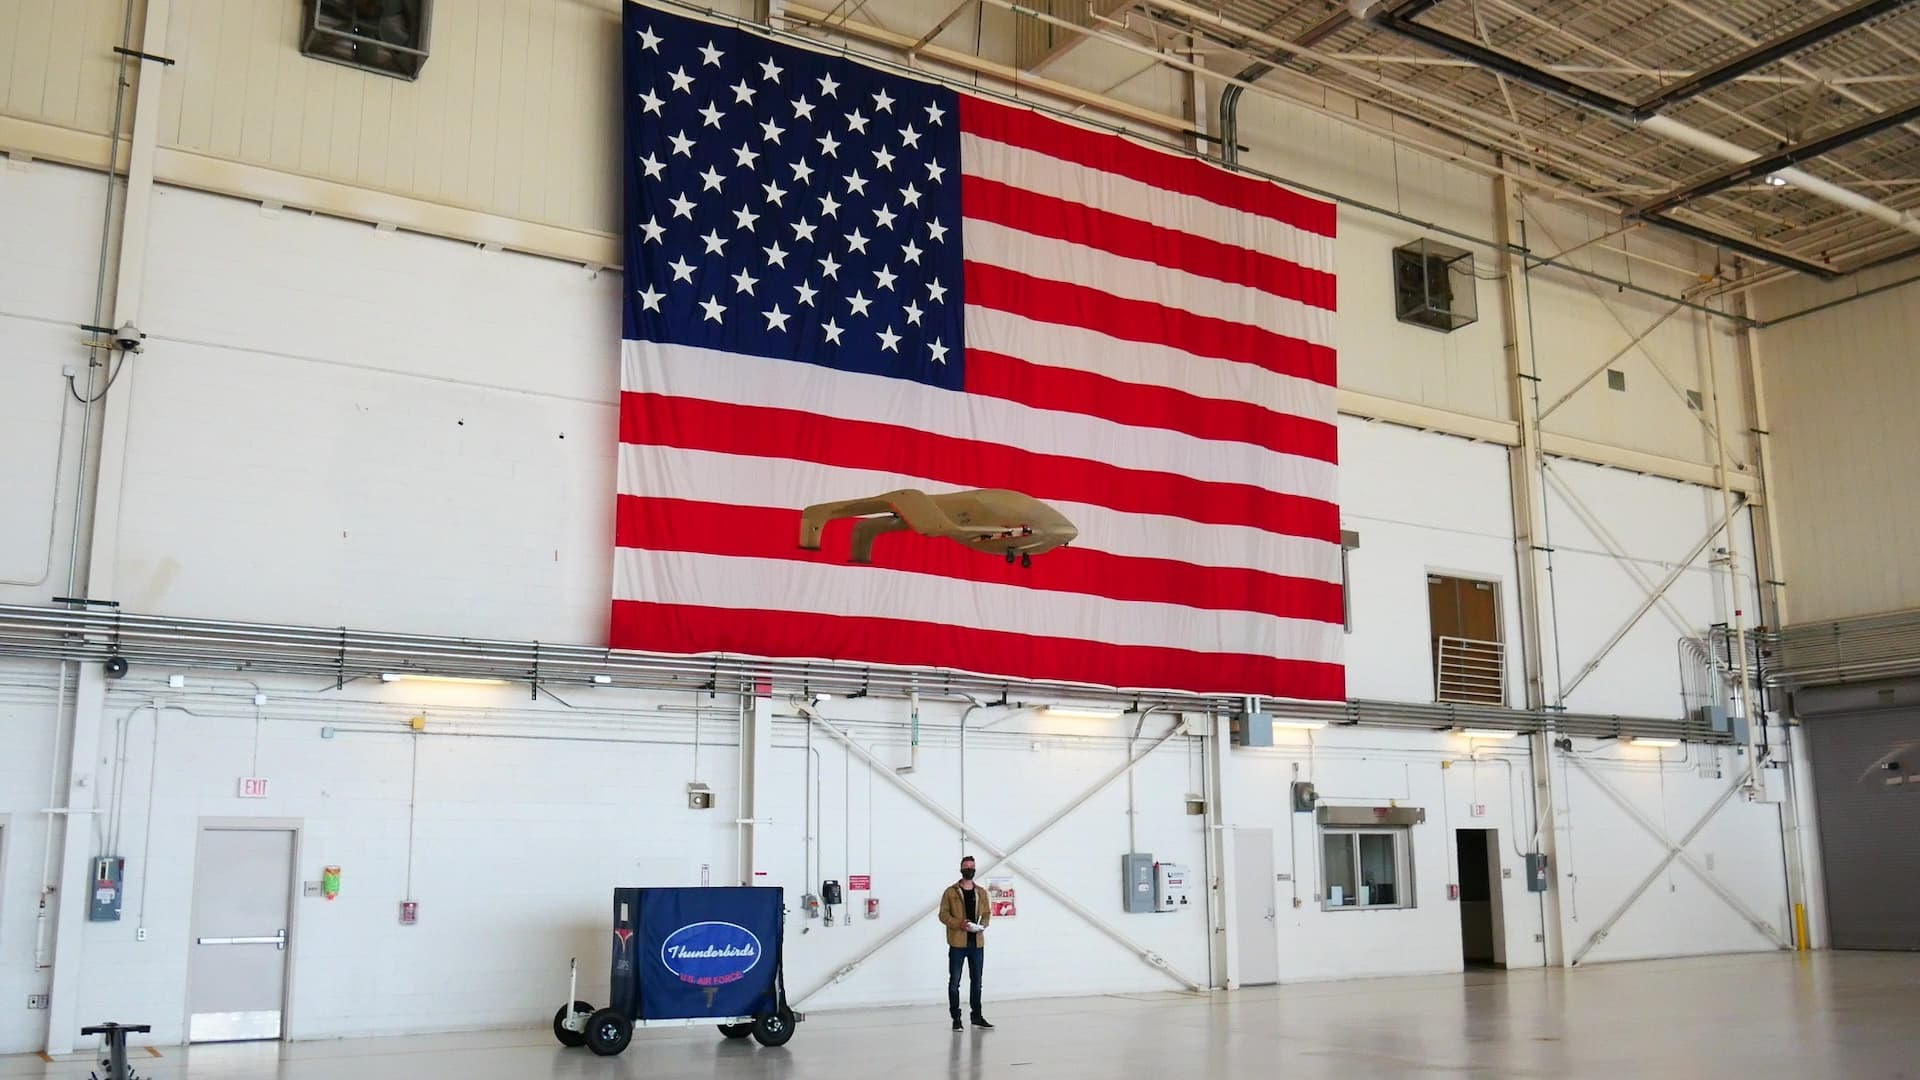 SJX flying in front of an American flag.